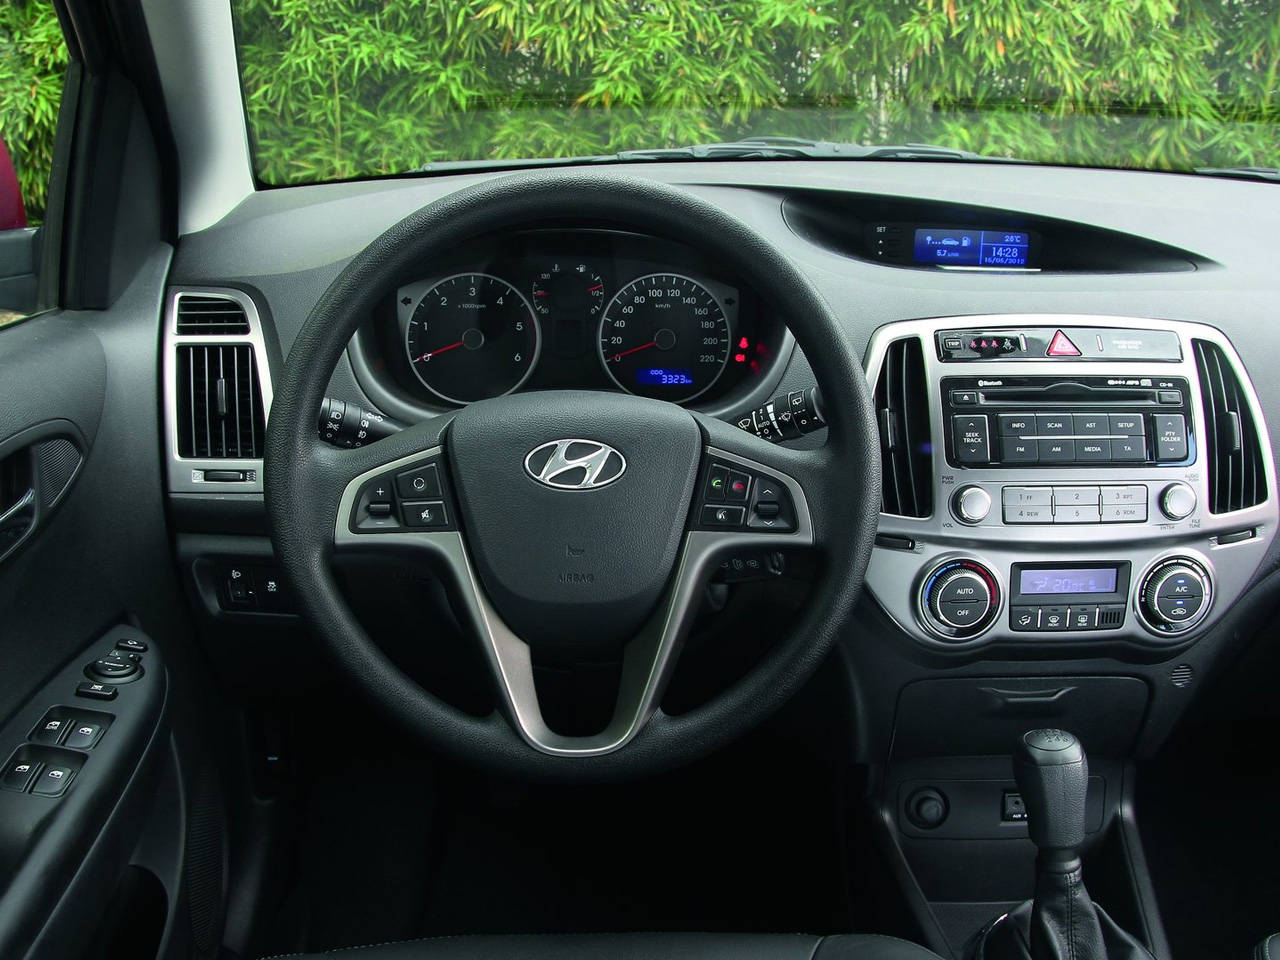 Hyundai i20 2013 interior muscle cars zone for Interior hyundai i20